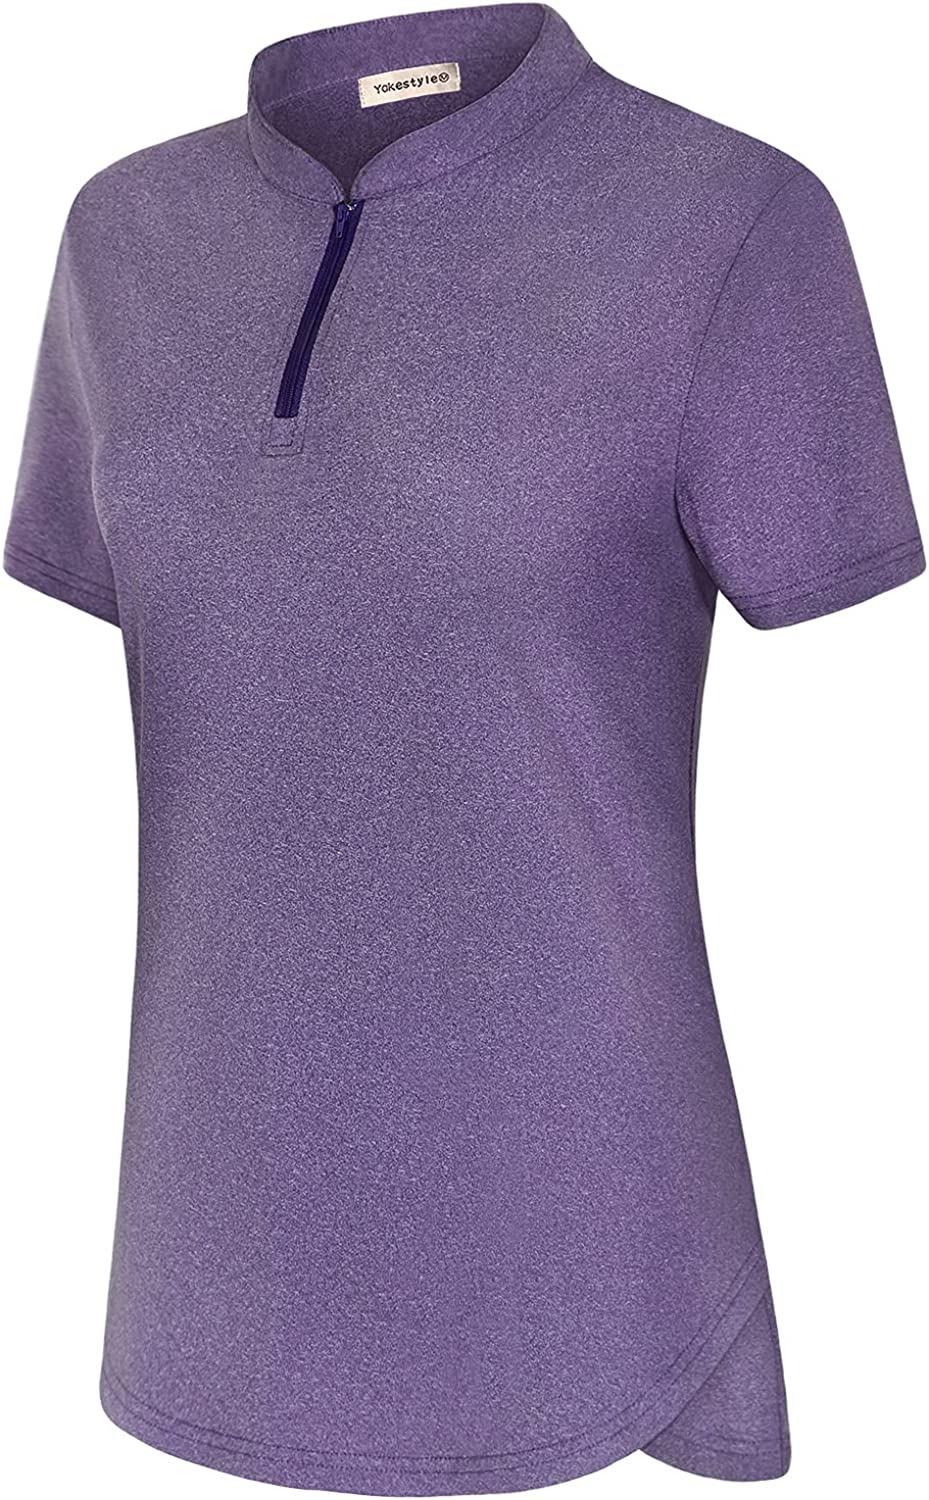 Yakestyle Women's Golf Bombing new work Polo Shirt Quarter Tennis High quality Dry A Zip Quick